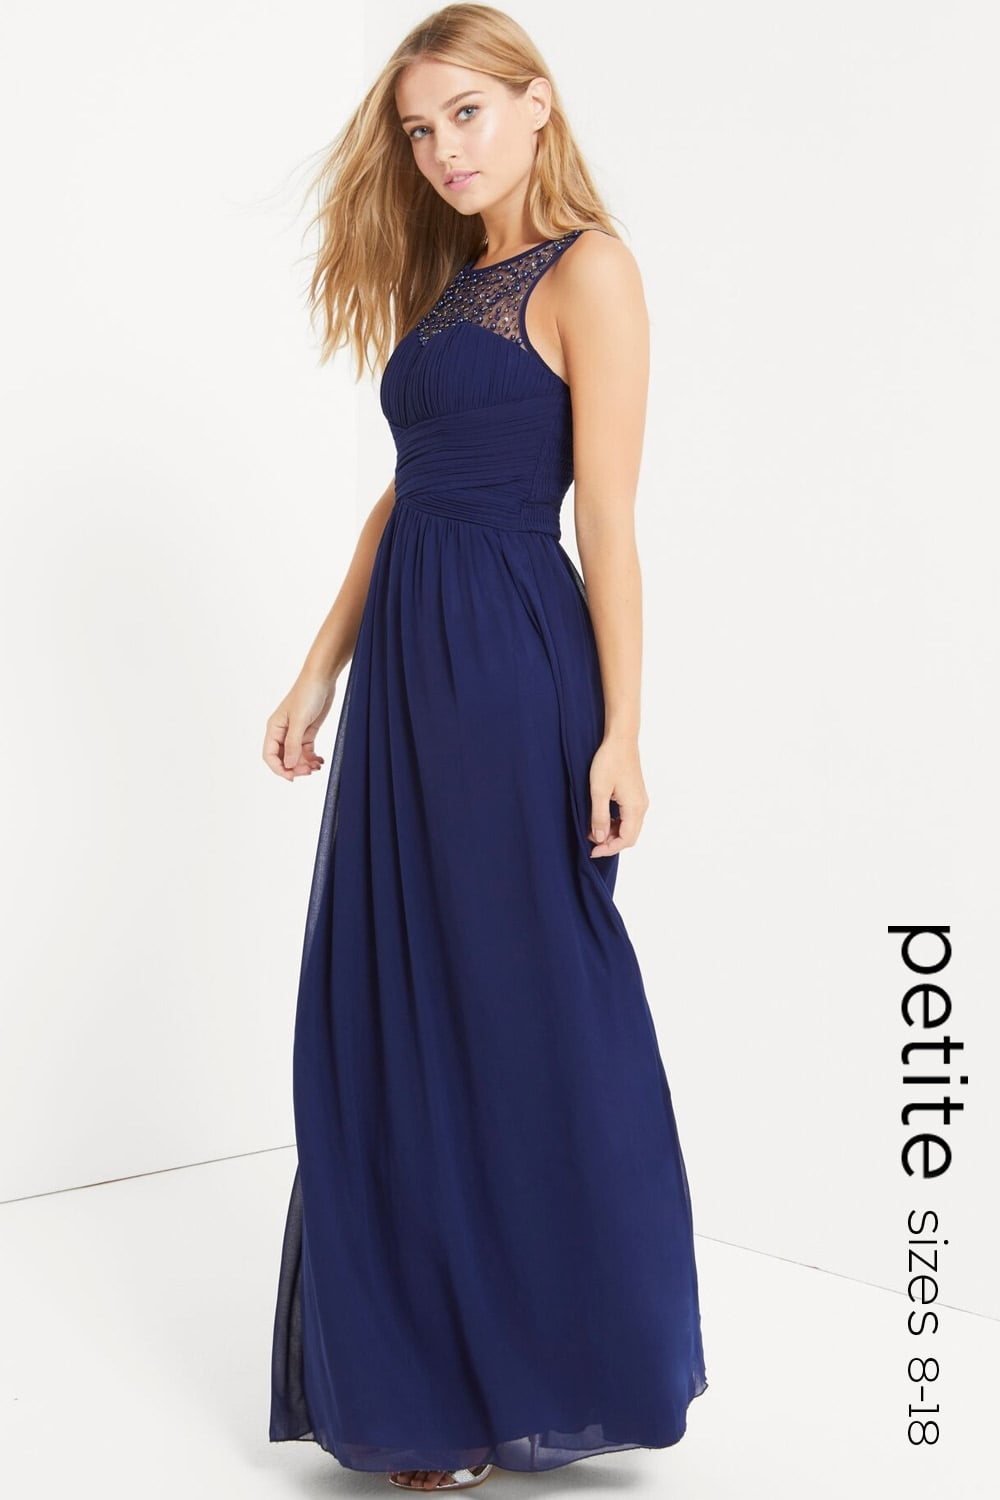 Petite Navy Petite Embellished Maxi Dress Petite From